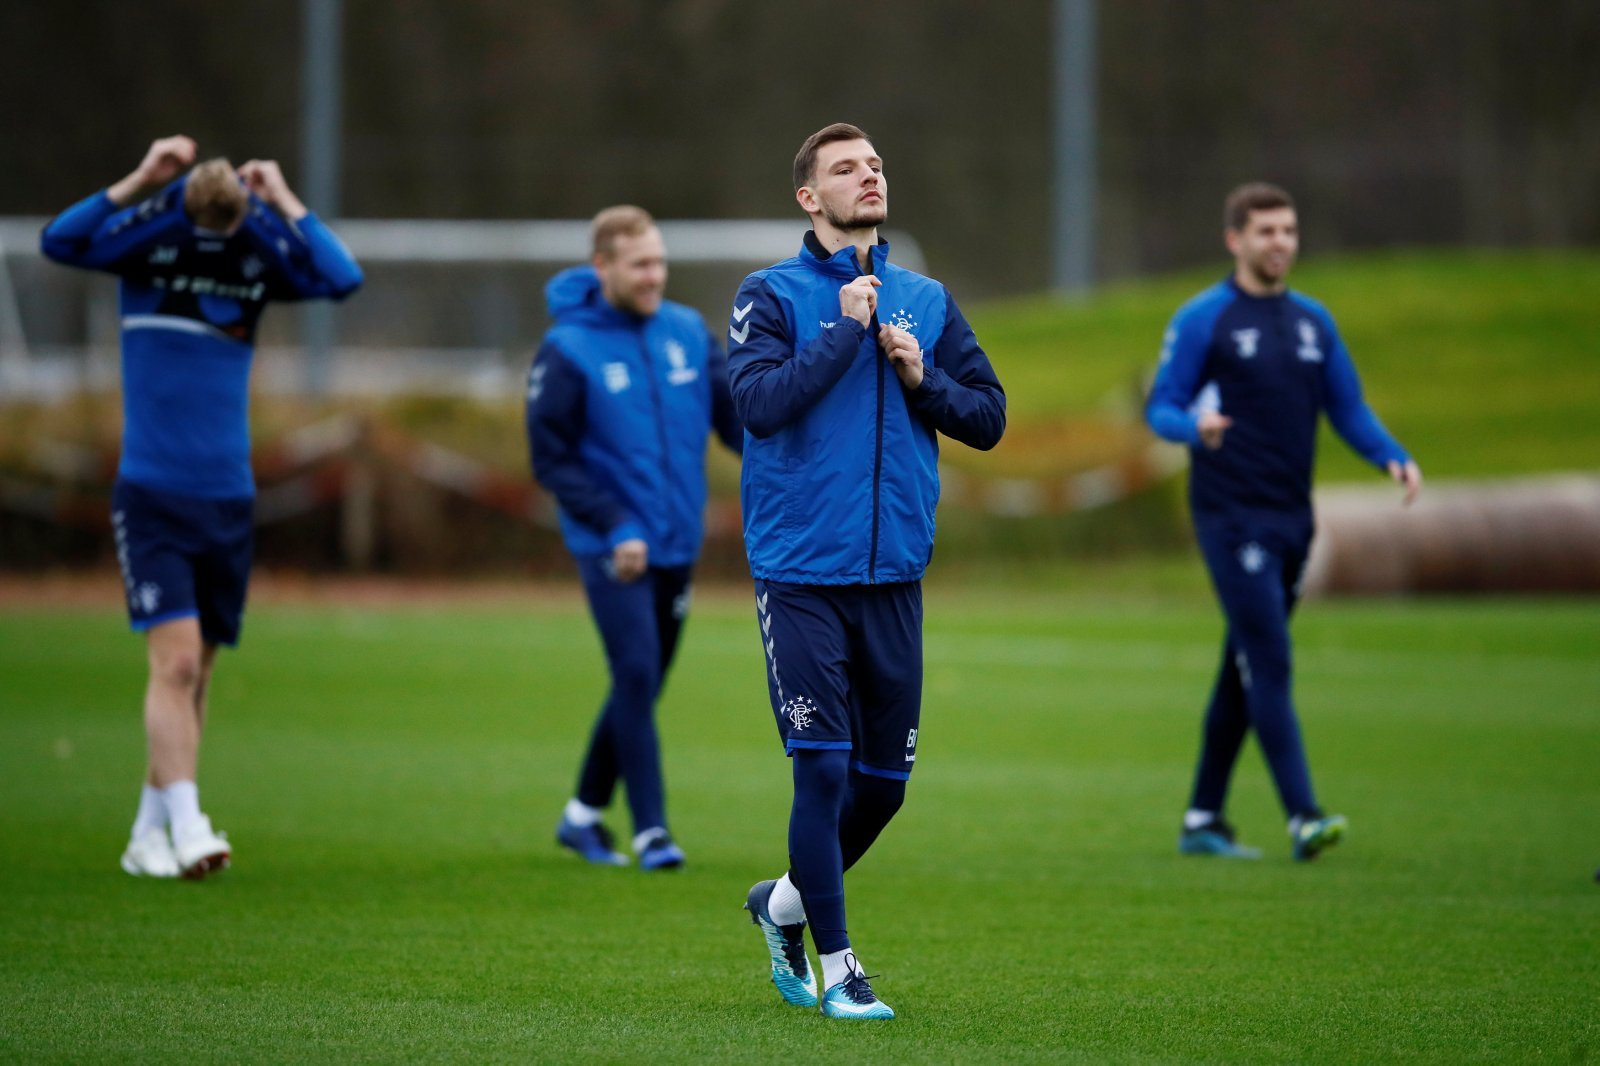 Rangers: These fans laud Borna Barisic for pre-match comments